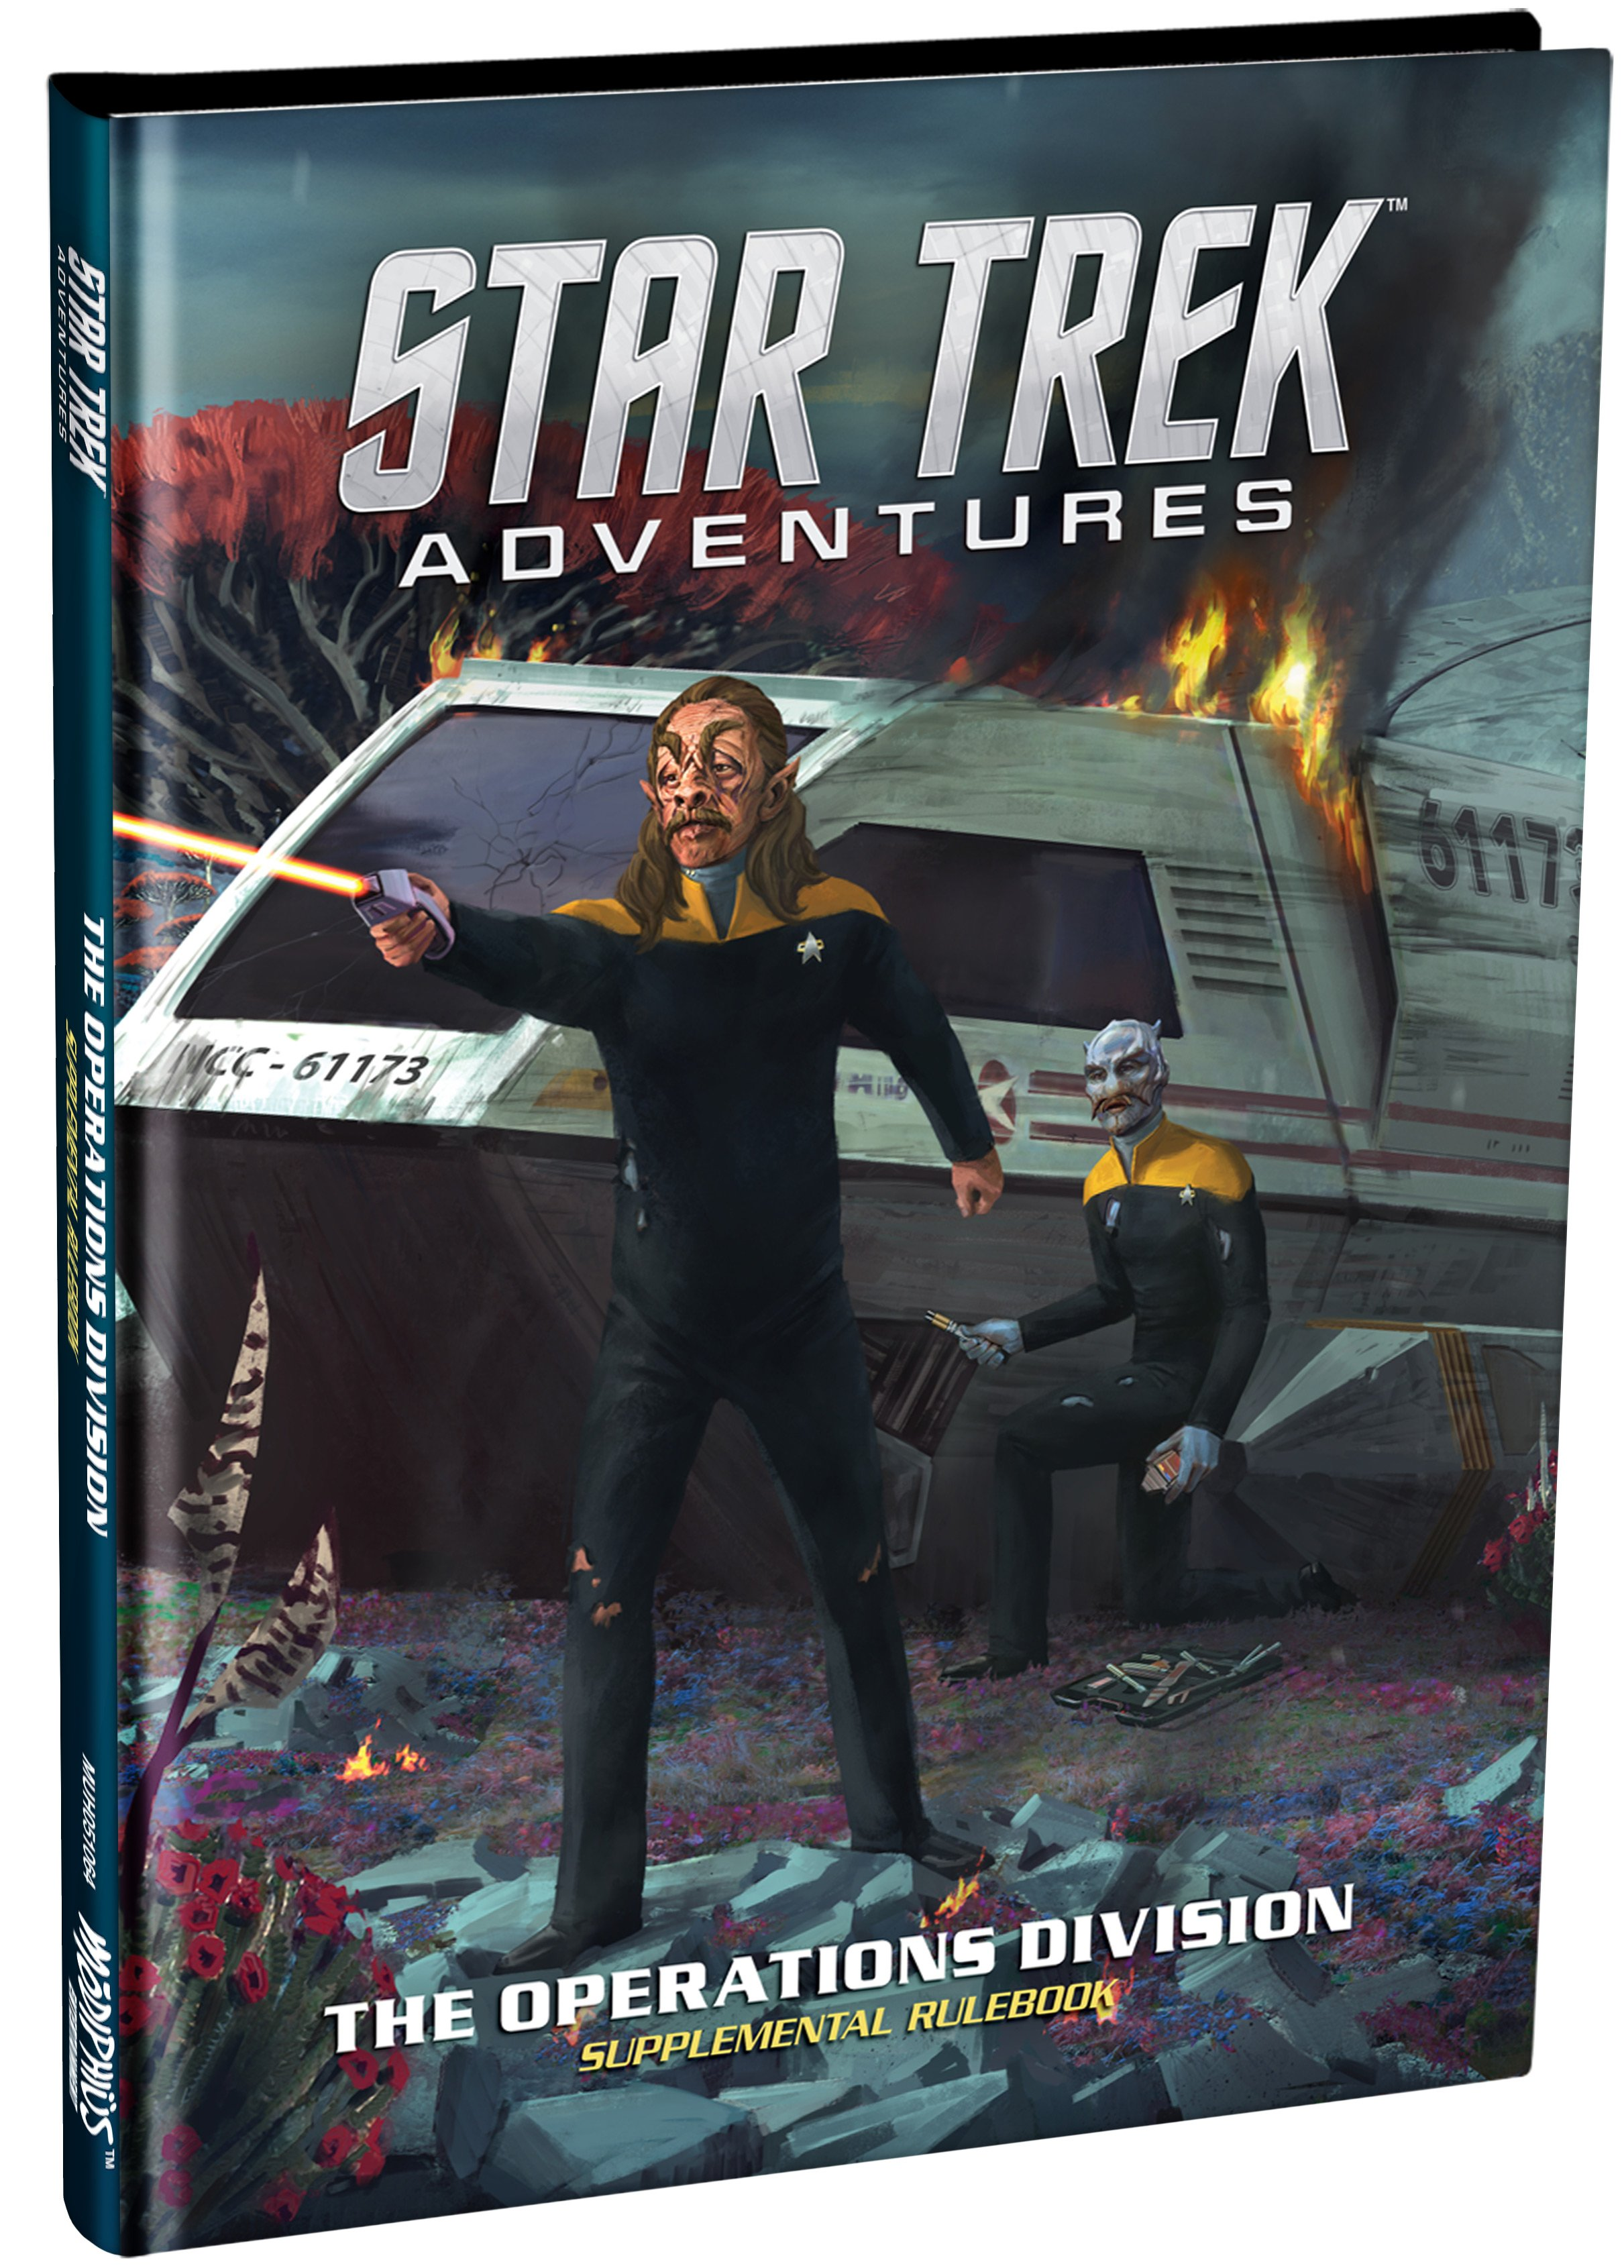 Star-Trek-The-Operations-Division-Cover-No-Logos_1